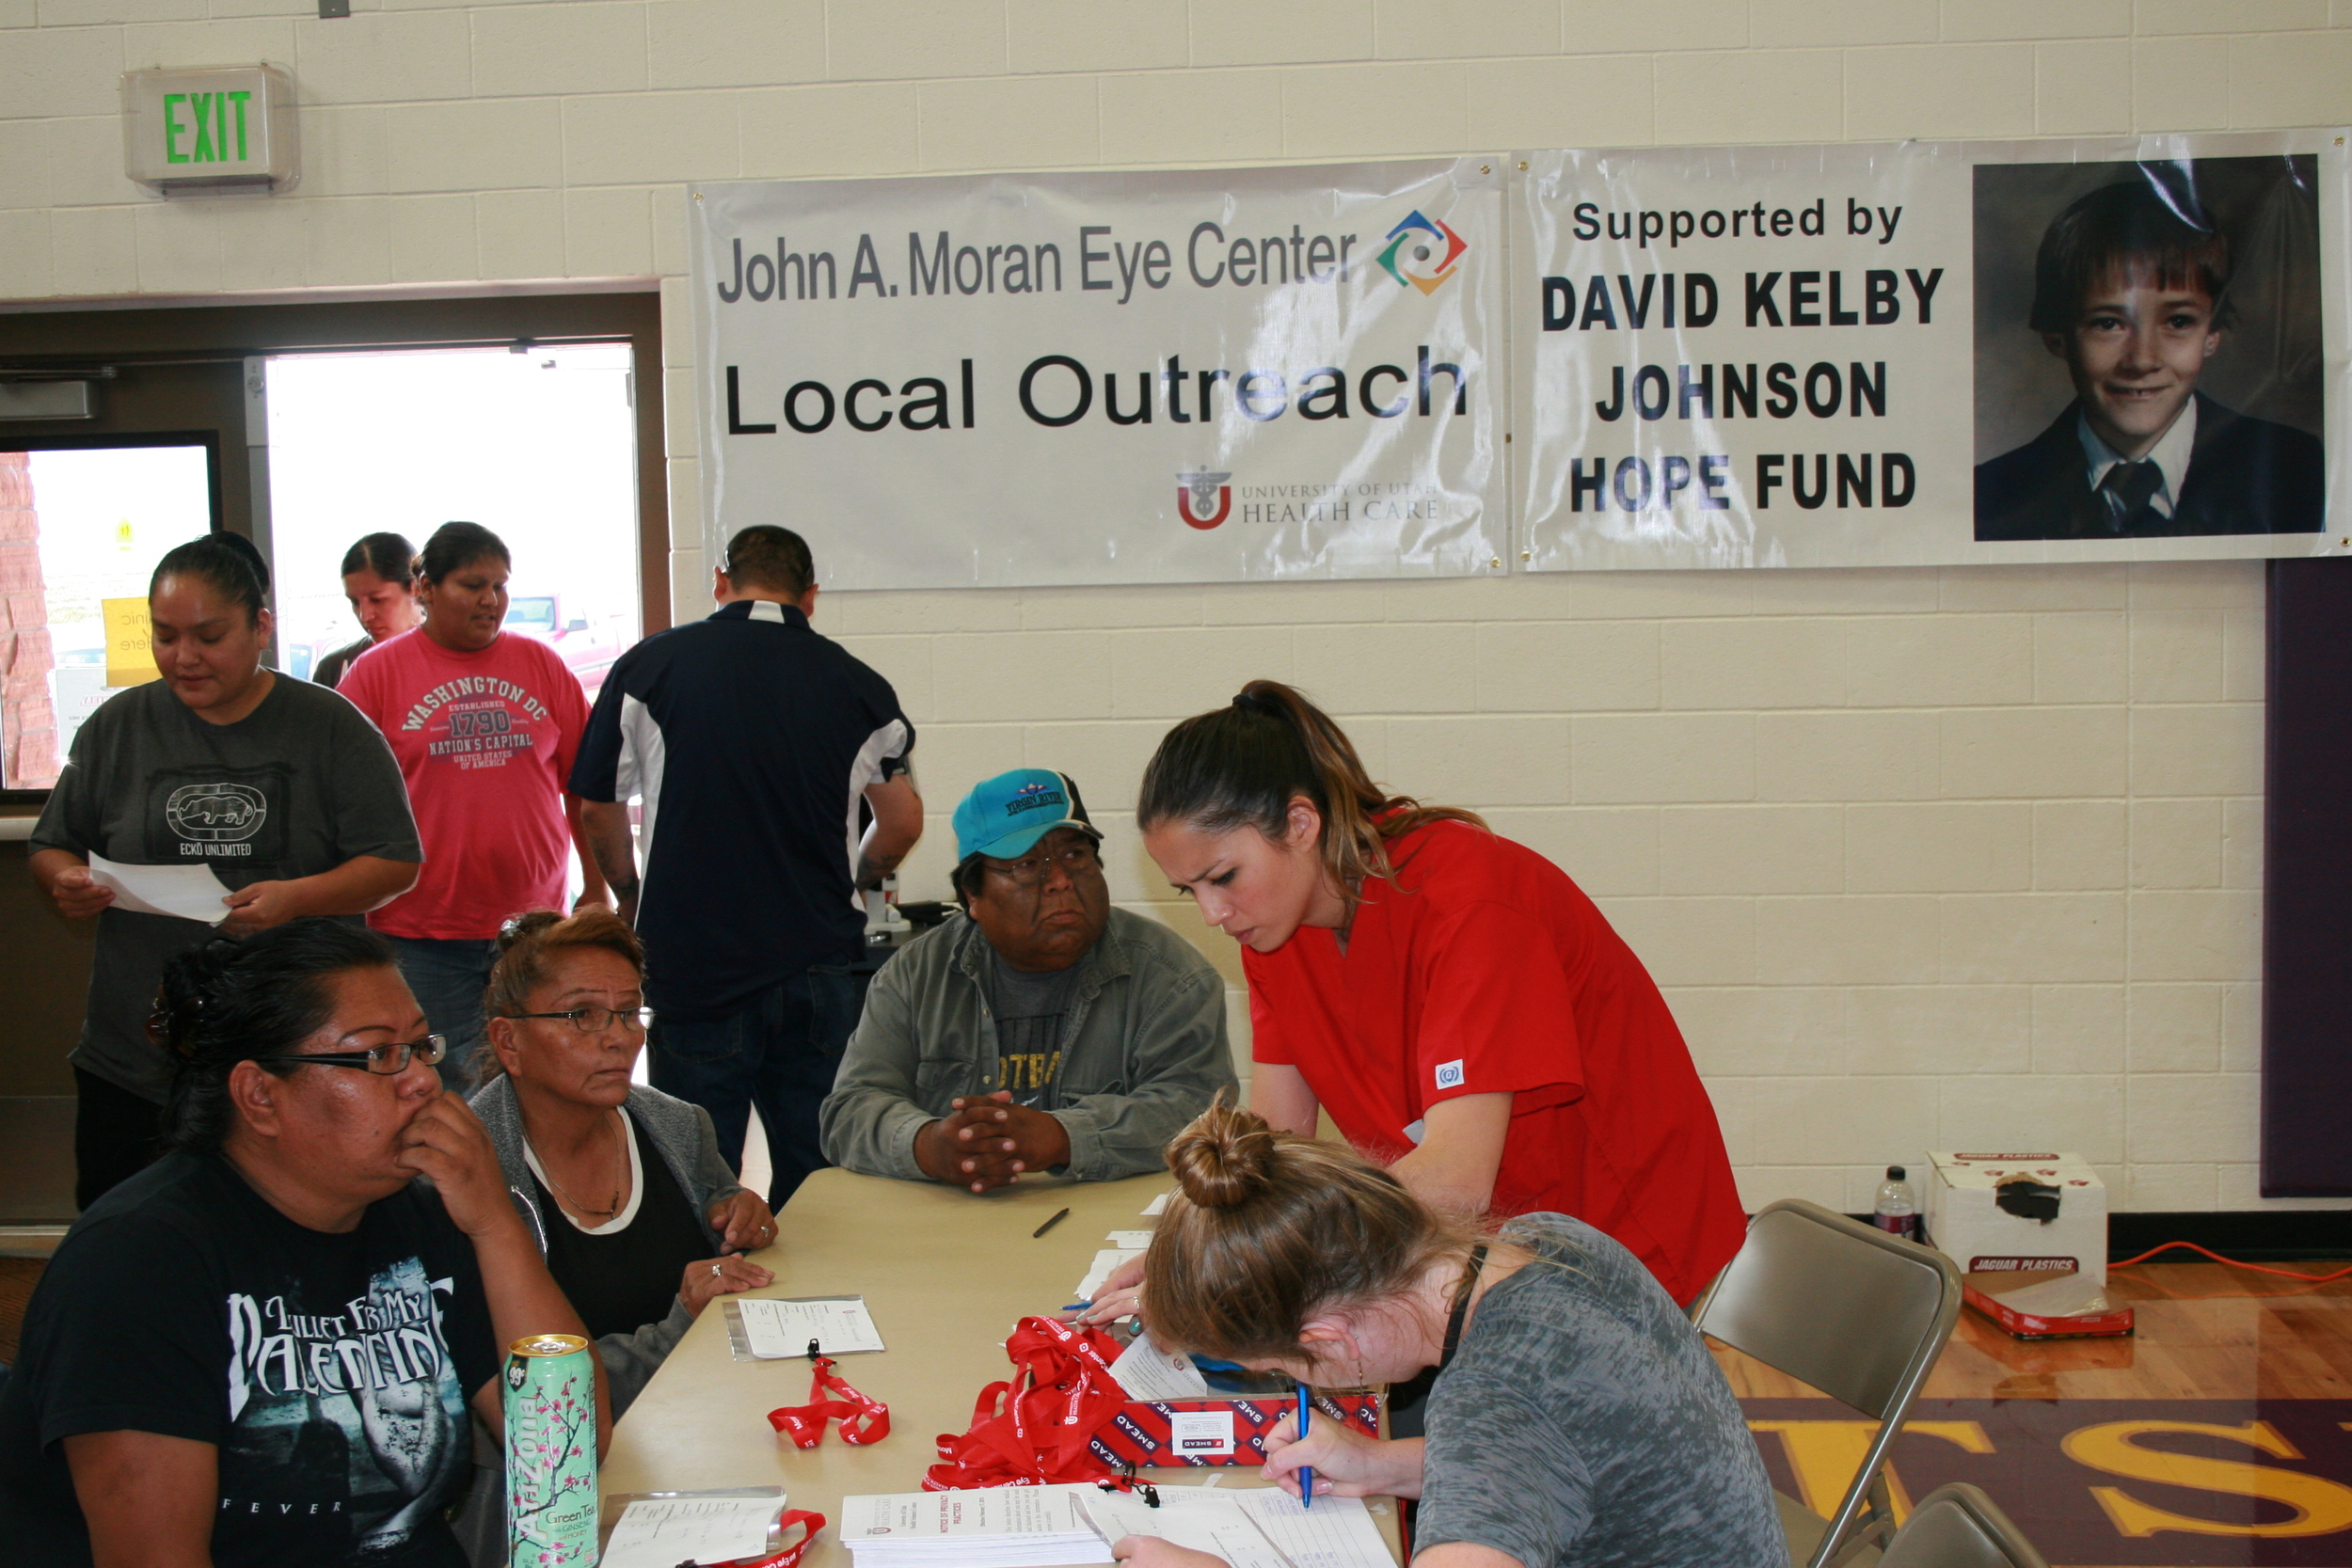 Moran eye center outreach supported by the david kelby johnson memorial foundation, 2013